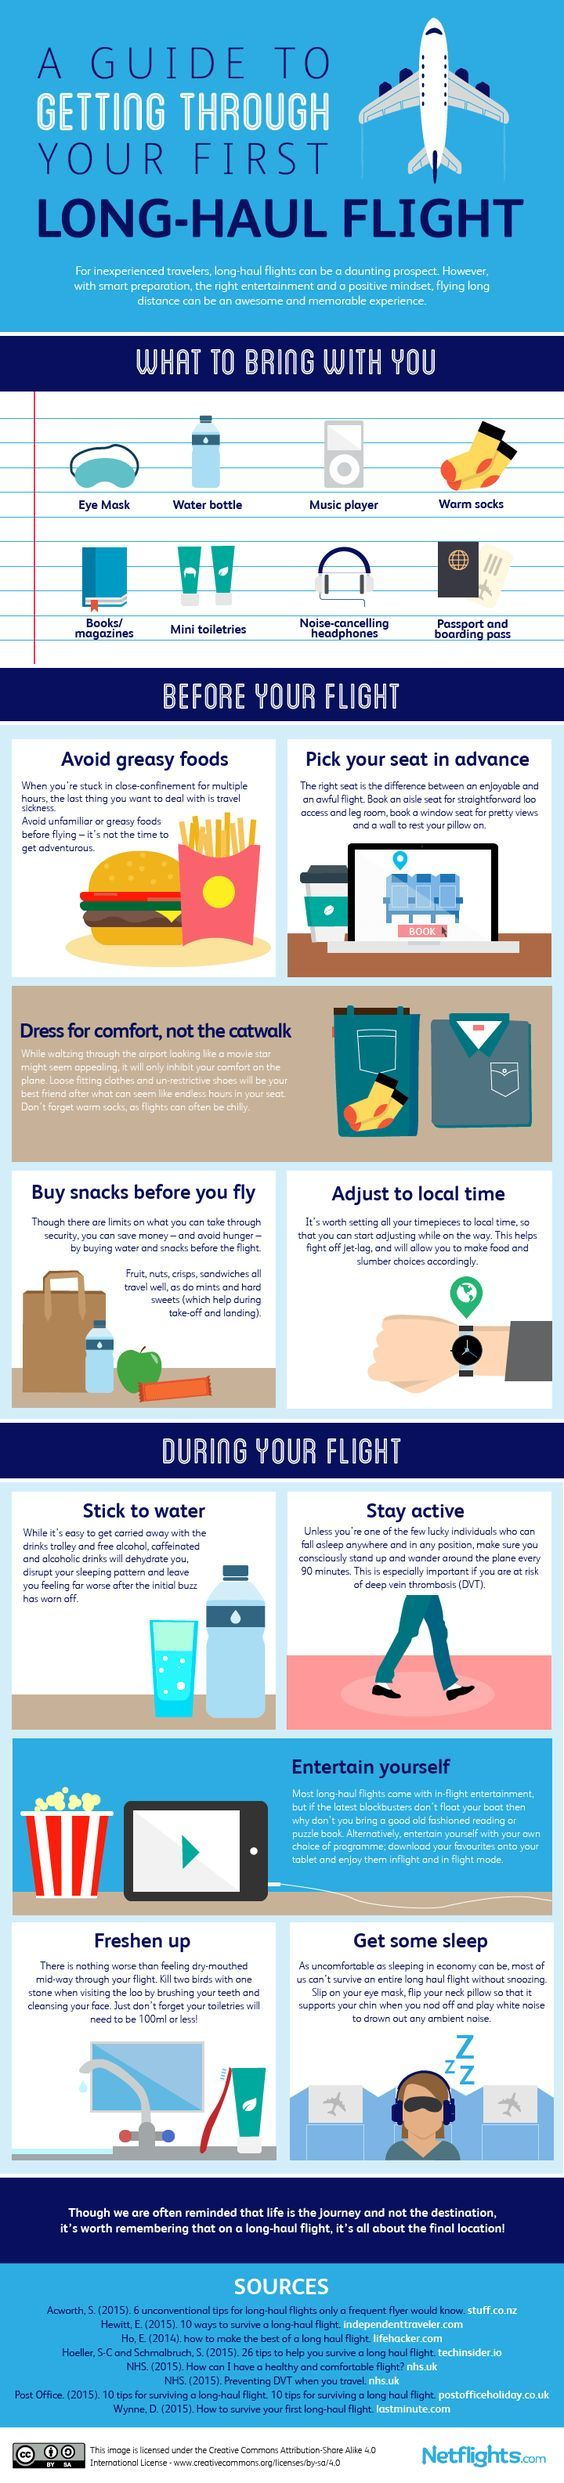 Going on an extra-long flight anytime soon? Follow these tips for what to pack, what to eat, and other smart habits.